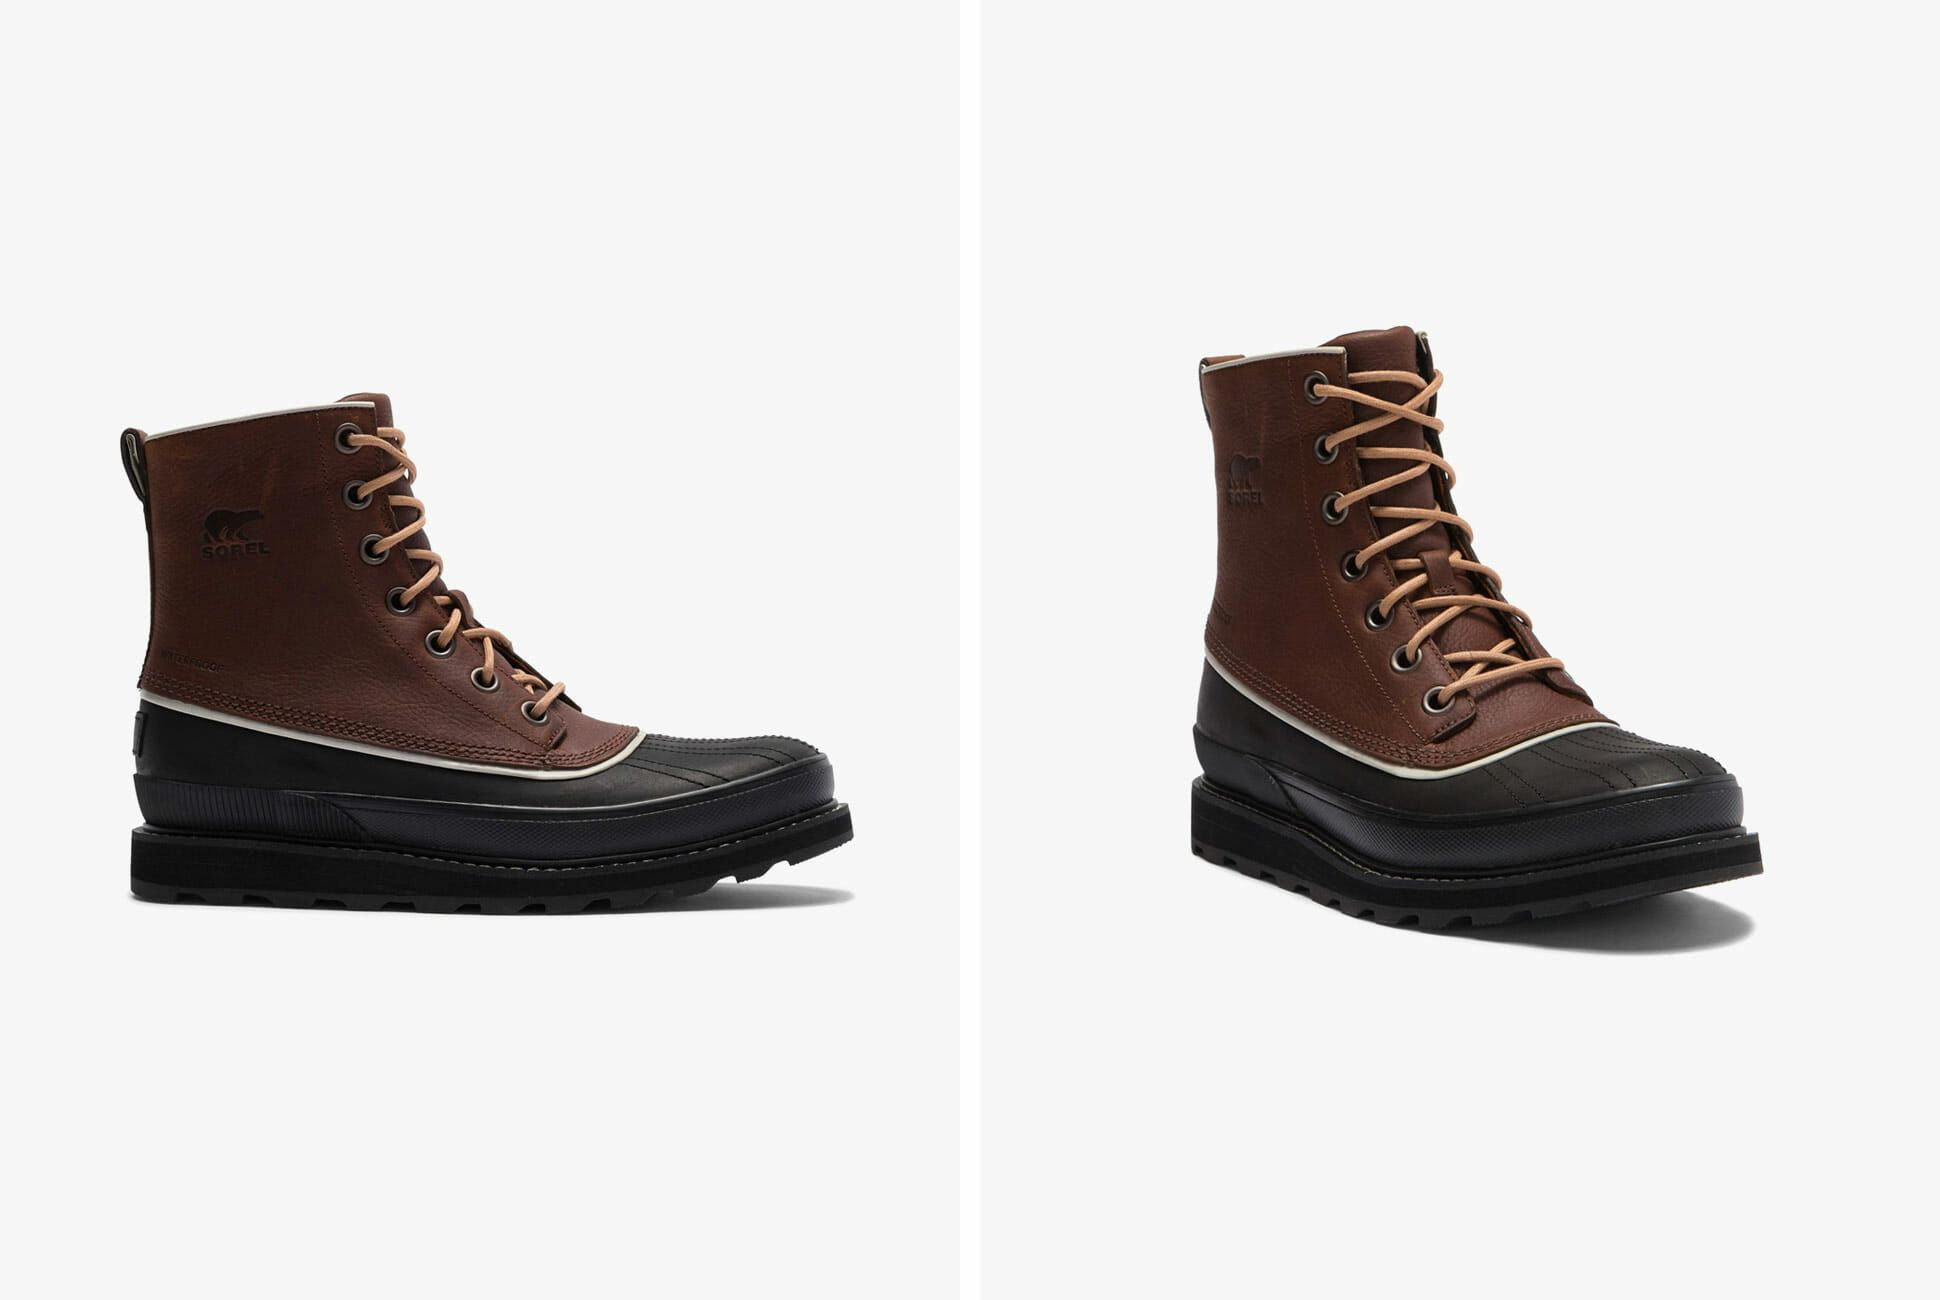 These Waterproof Fall Boots from Sorel